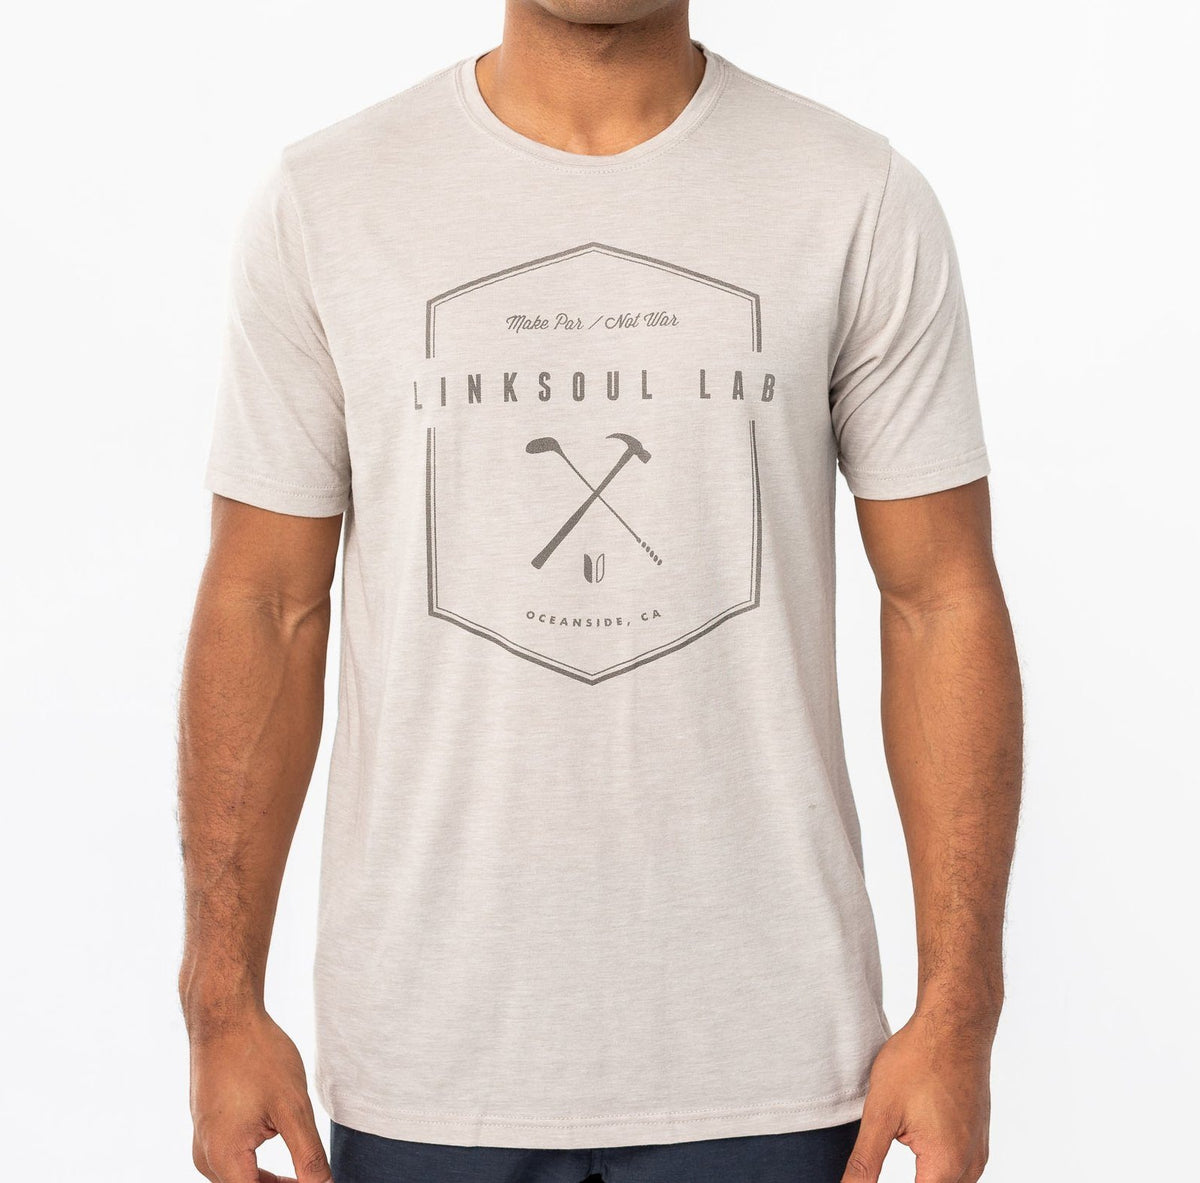 The Woodworker Tee